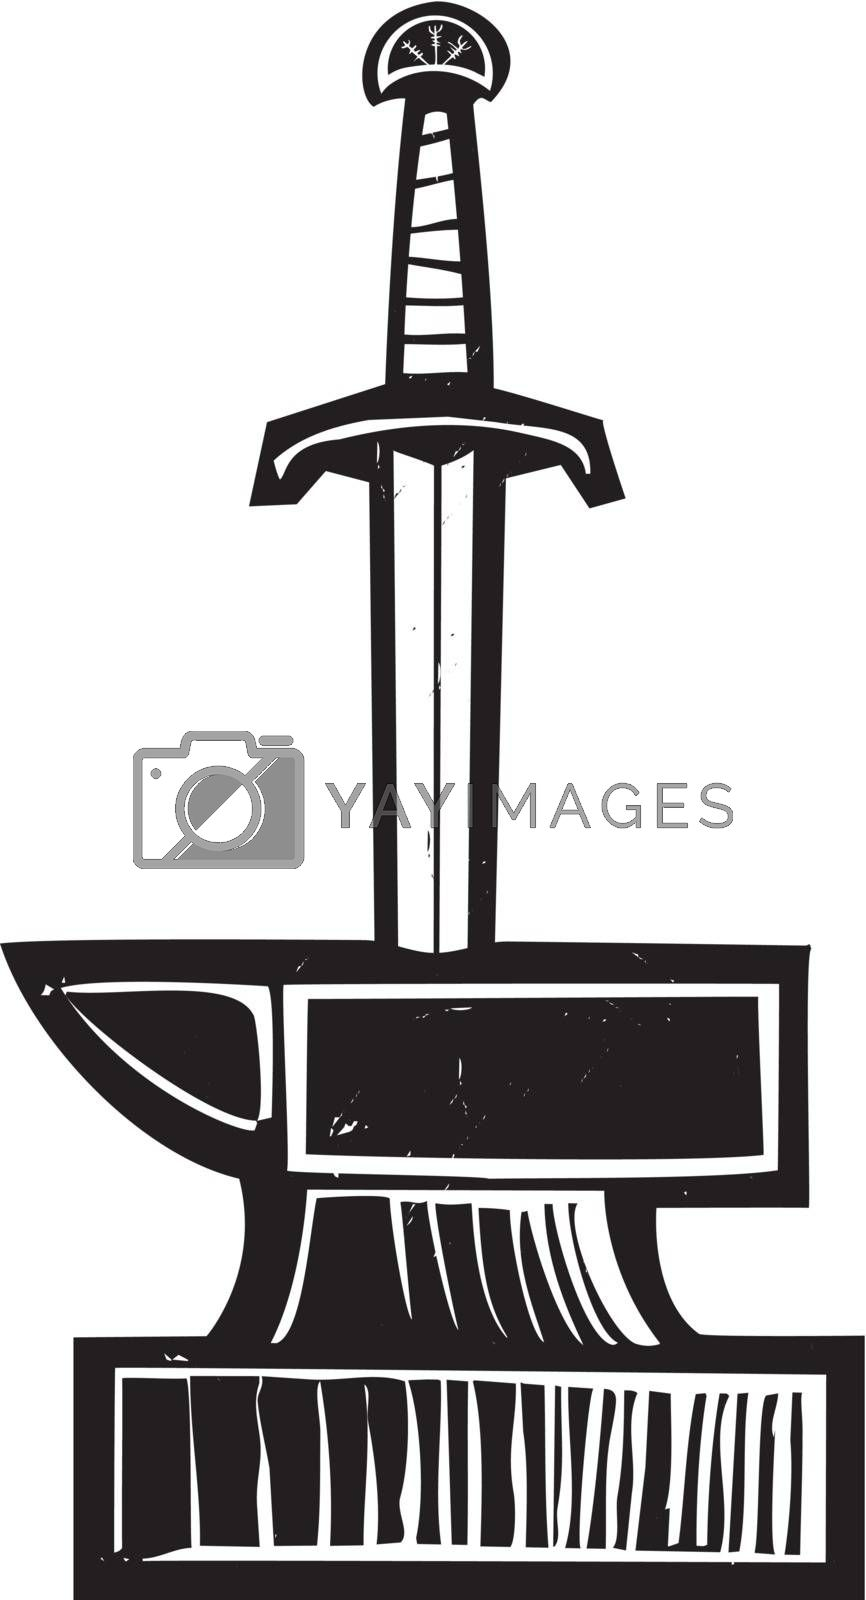 Woodcut image of King Arthur's Sword in the Stone Excalibur